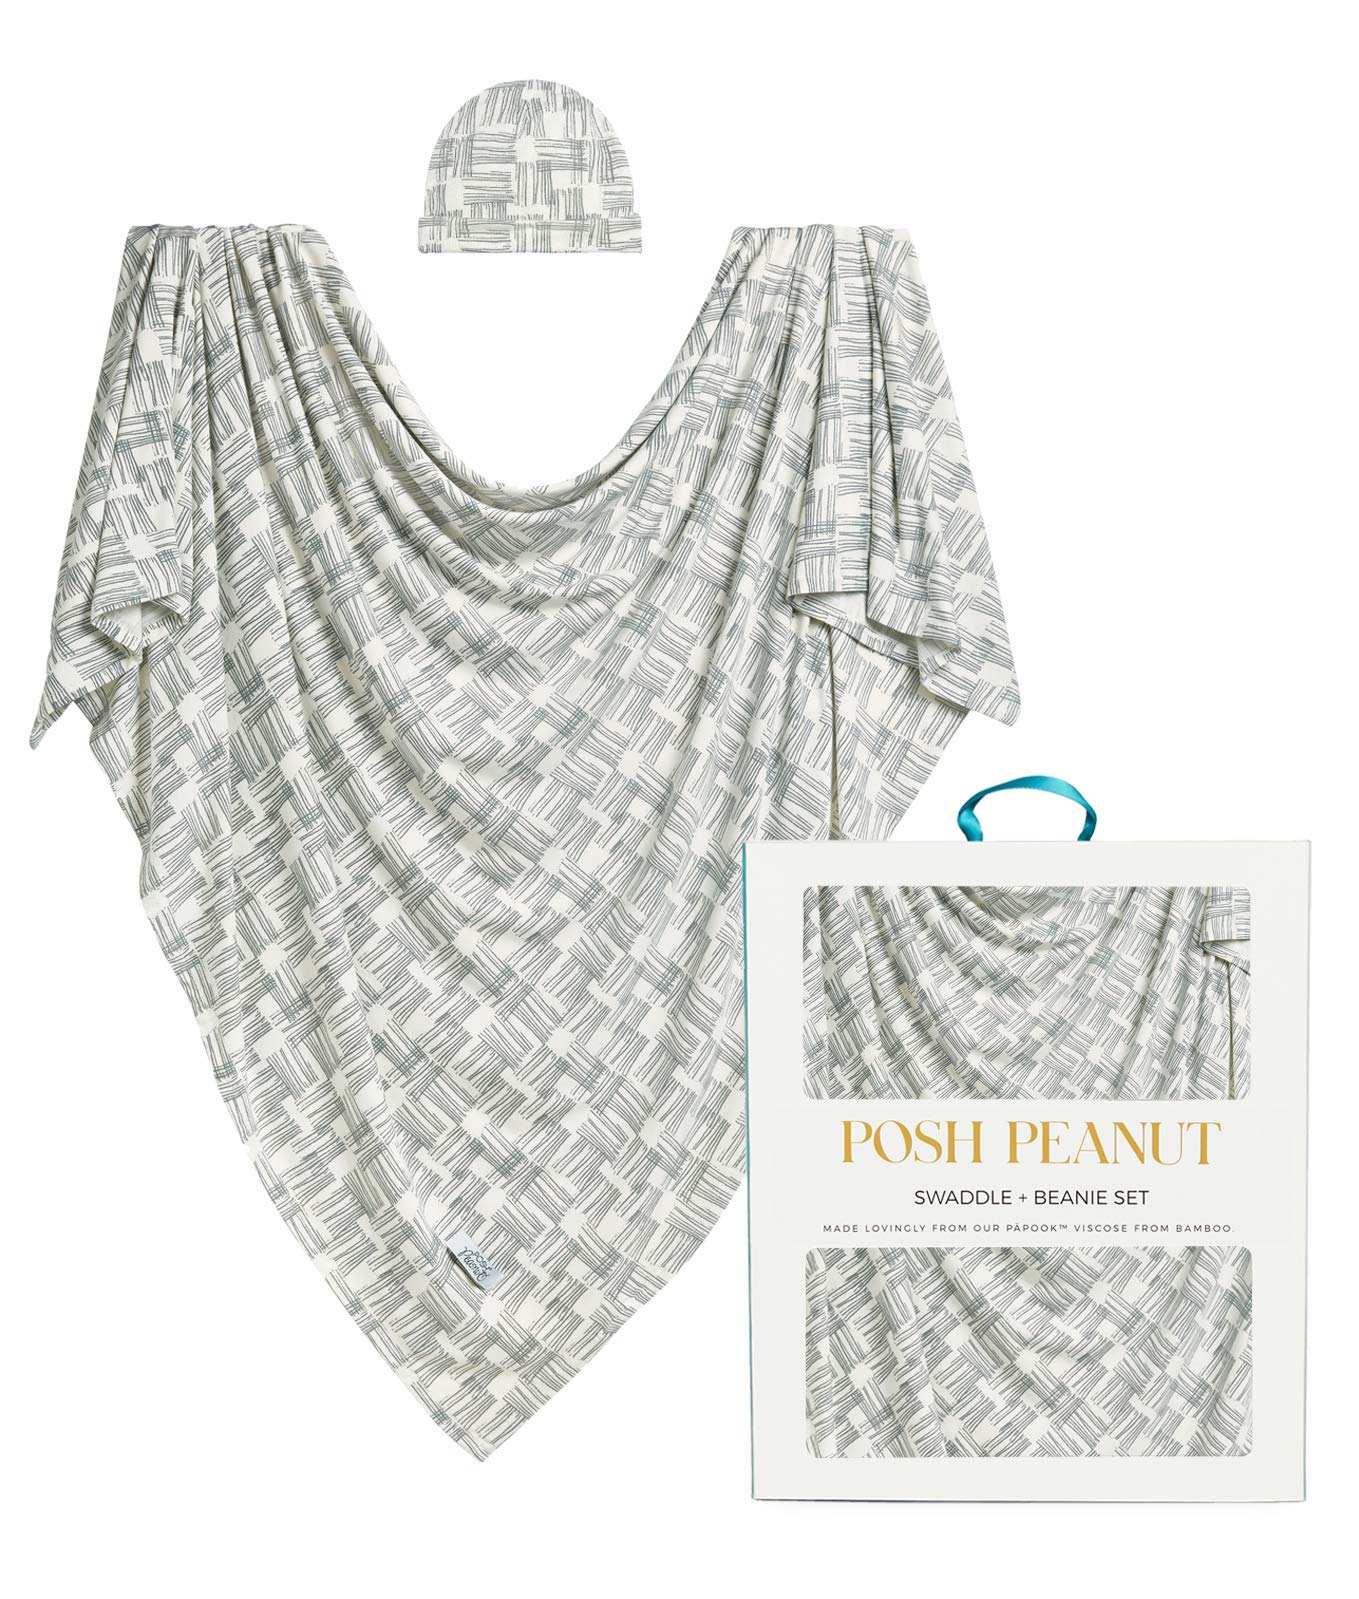 Posh Peanut Baby Boy Swaddle Blanket - Large Premium Knit Viscose from Bamboo - Infant Swaddle Wrap, Receiving Blanket and Beanie Set, Baby Shower Newborn Gift, Registry - Rivers Gray